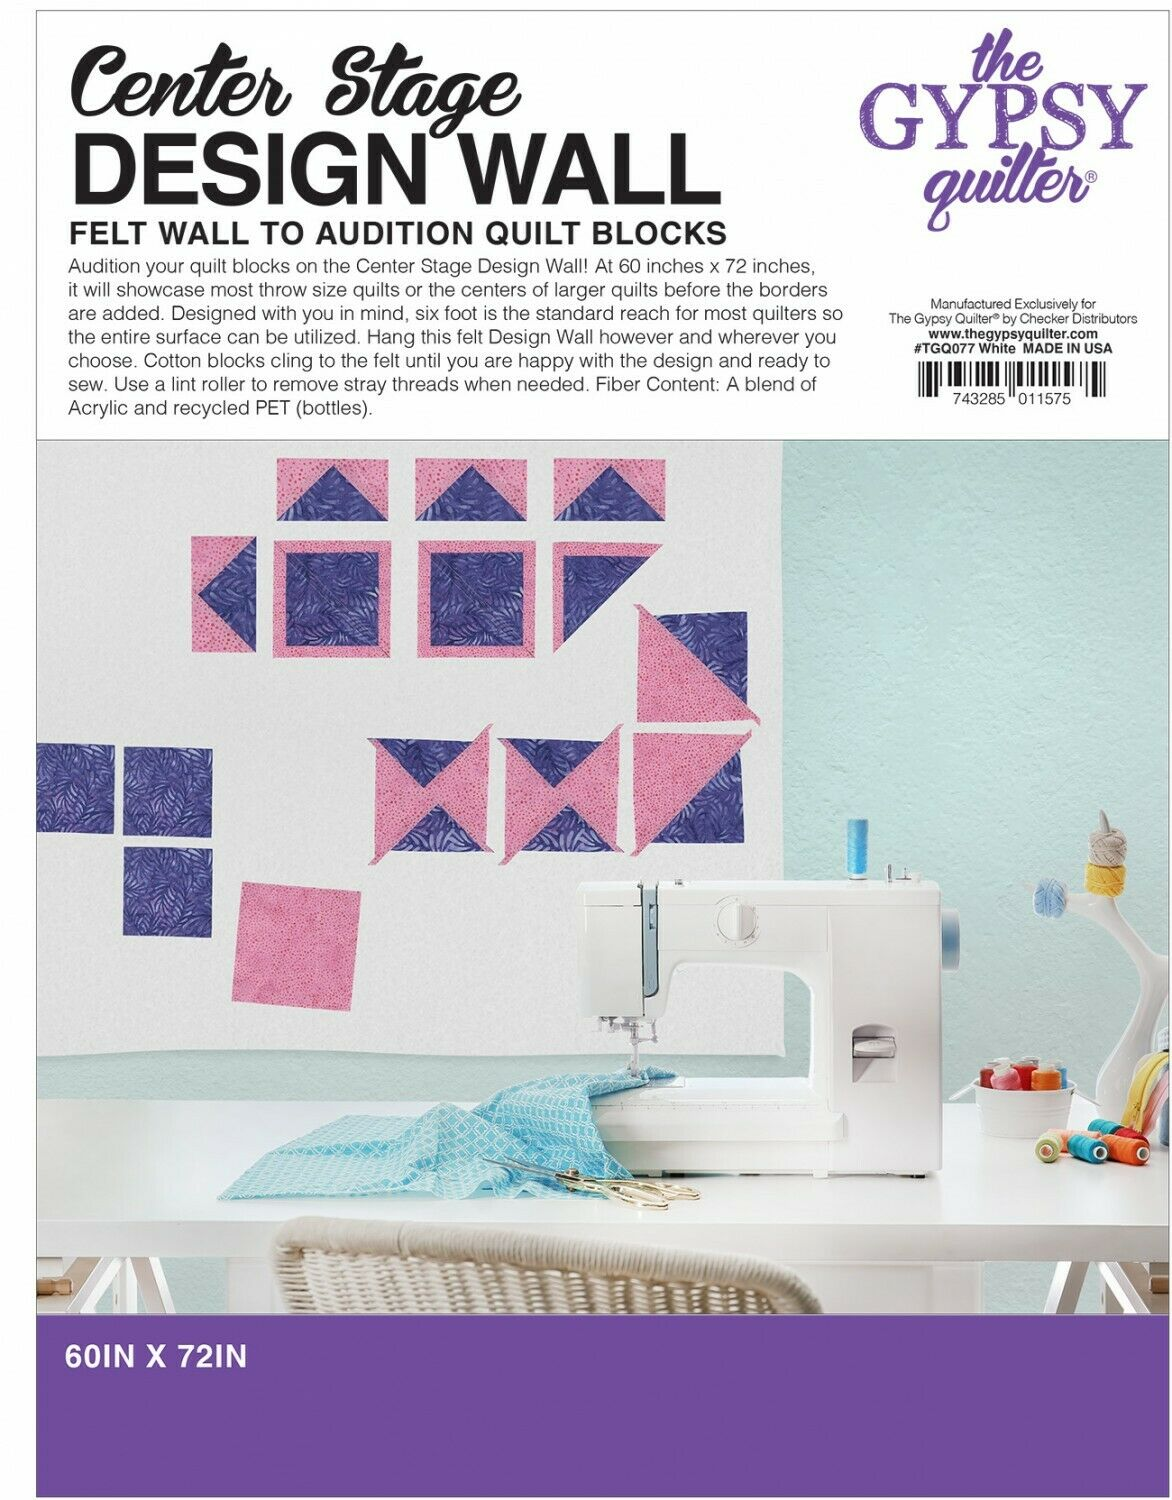 Center Stage Design Wall White 60in x 72in